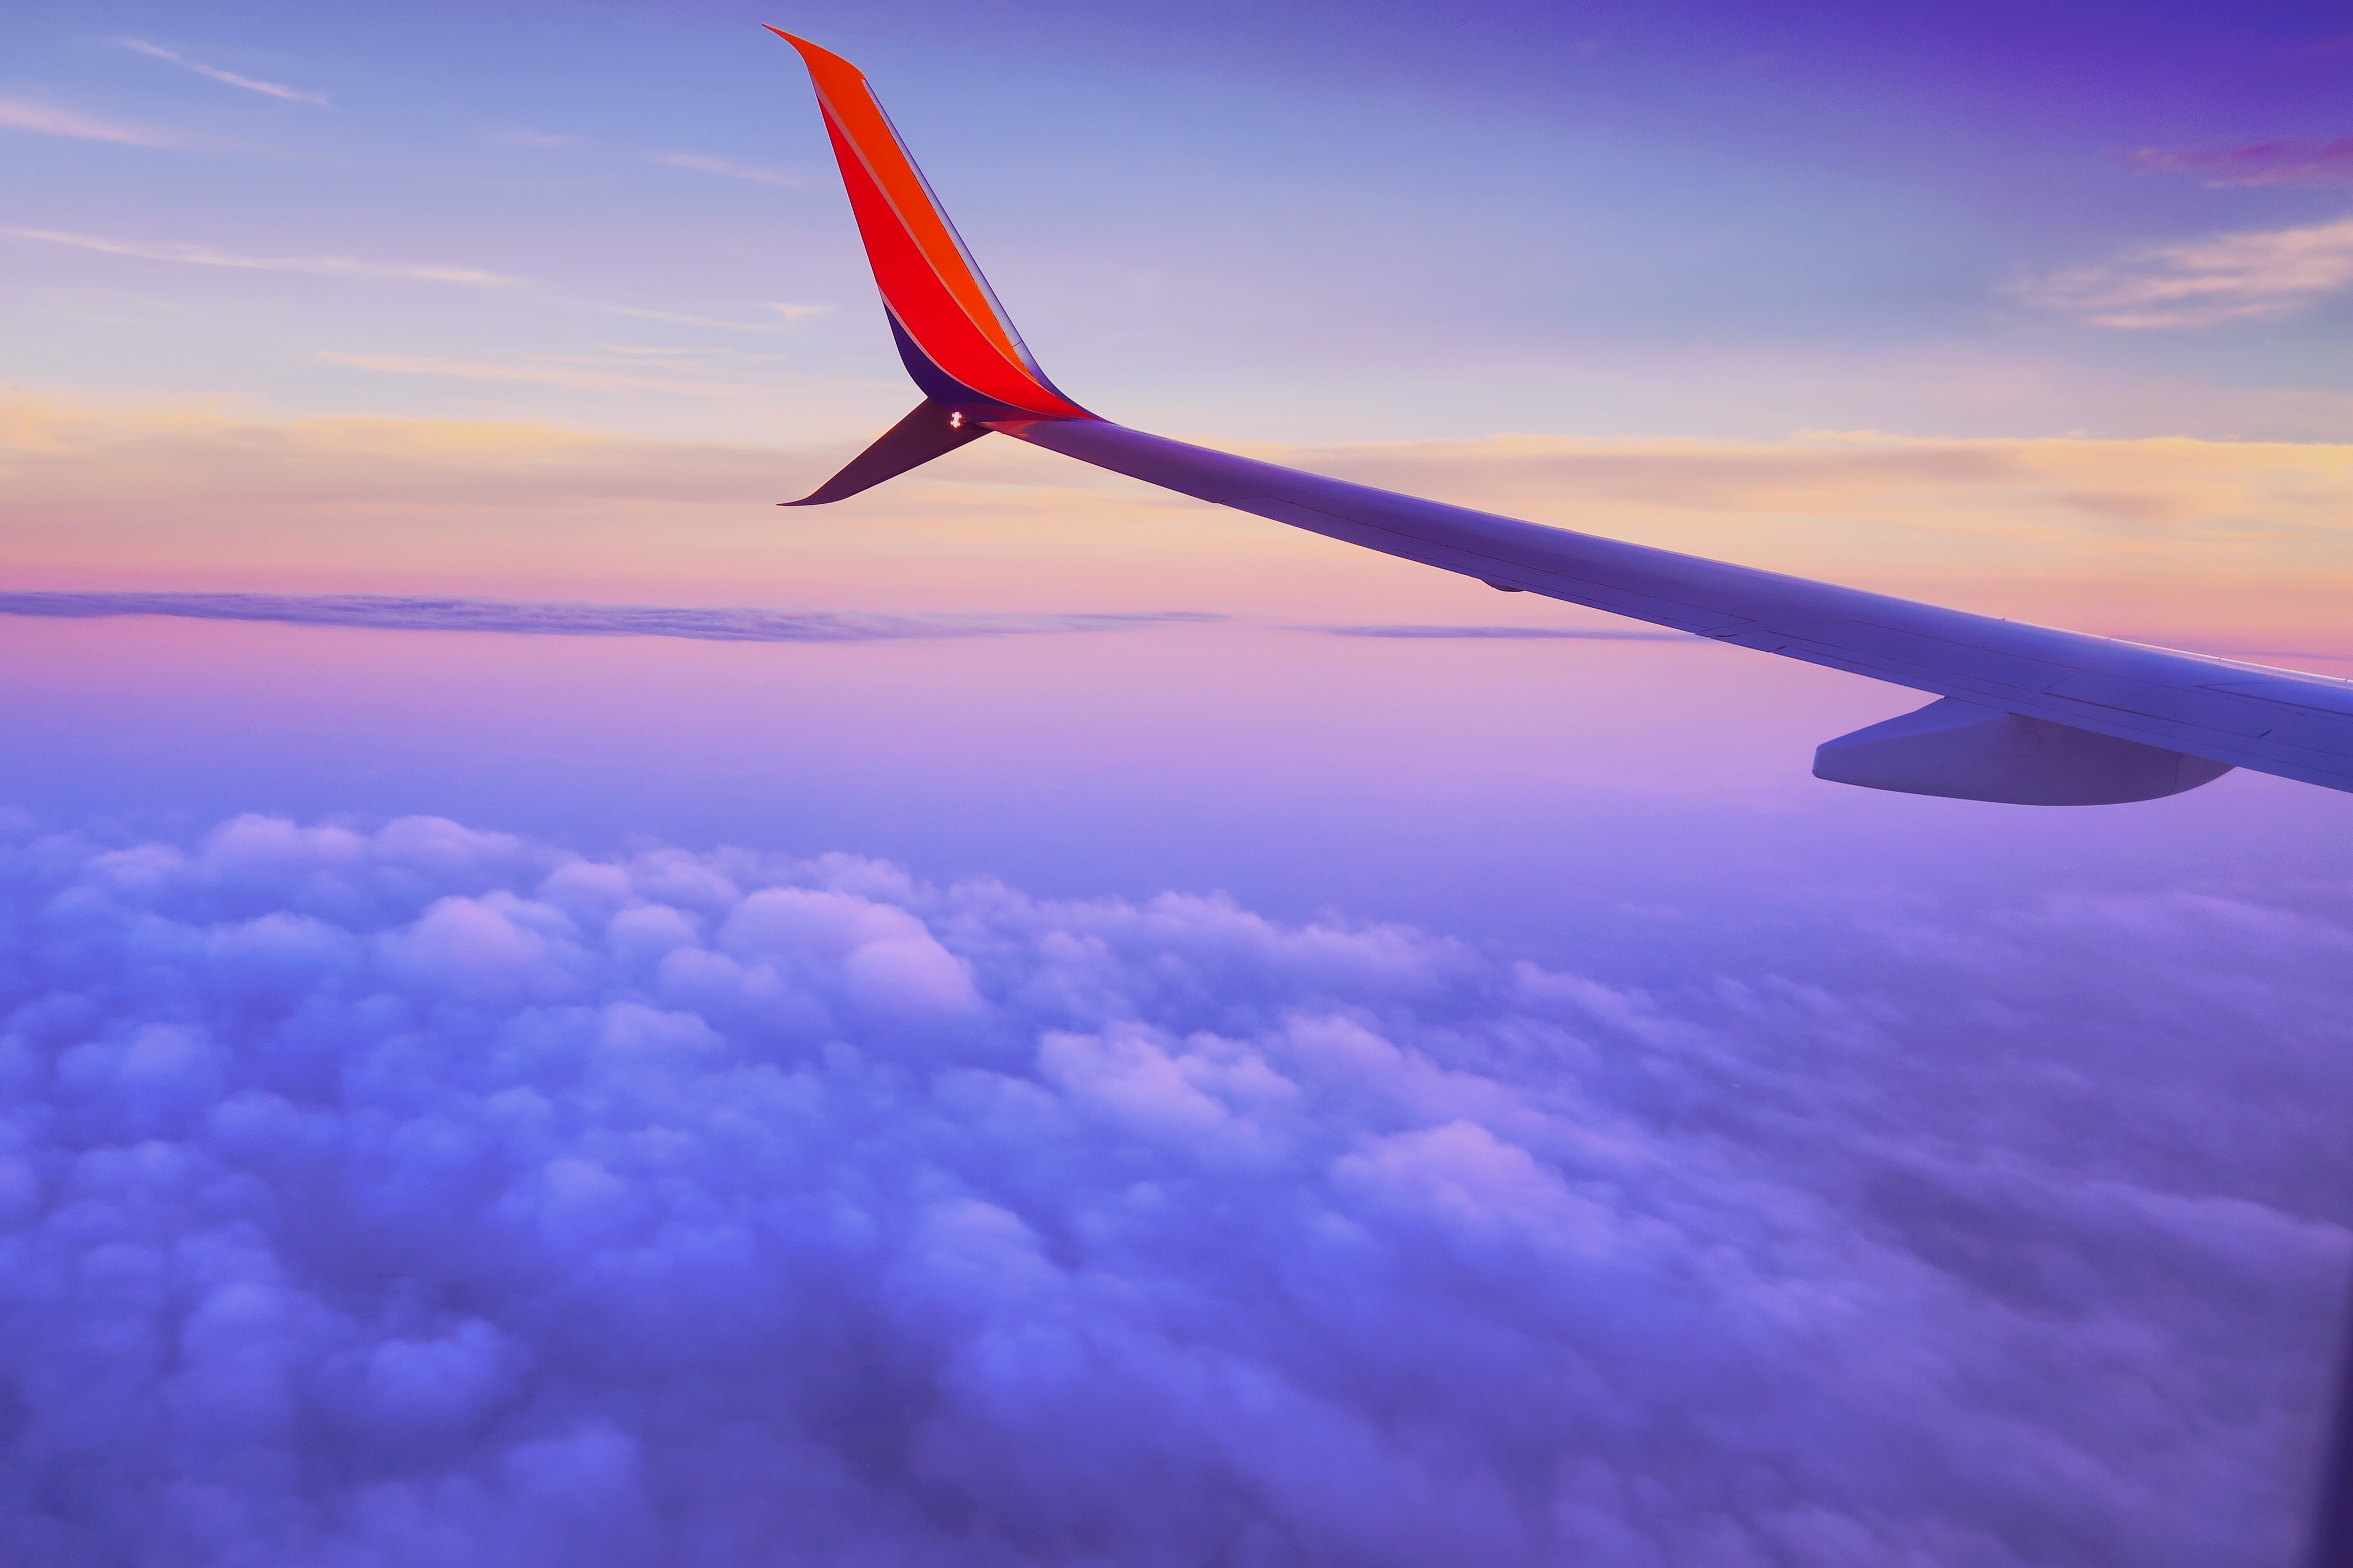 person in a plane flying at high altitude taking photo of left airplane wing during daytime